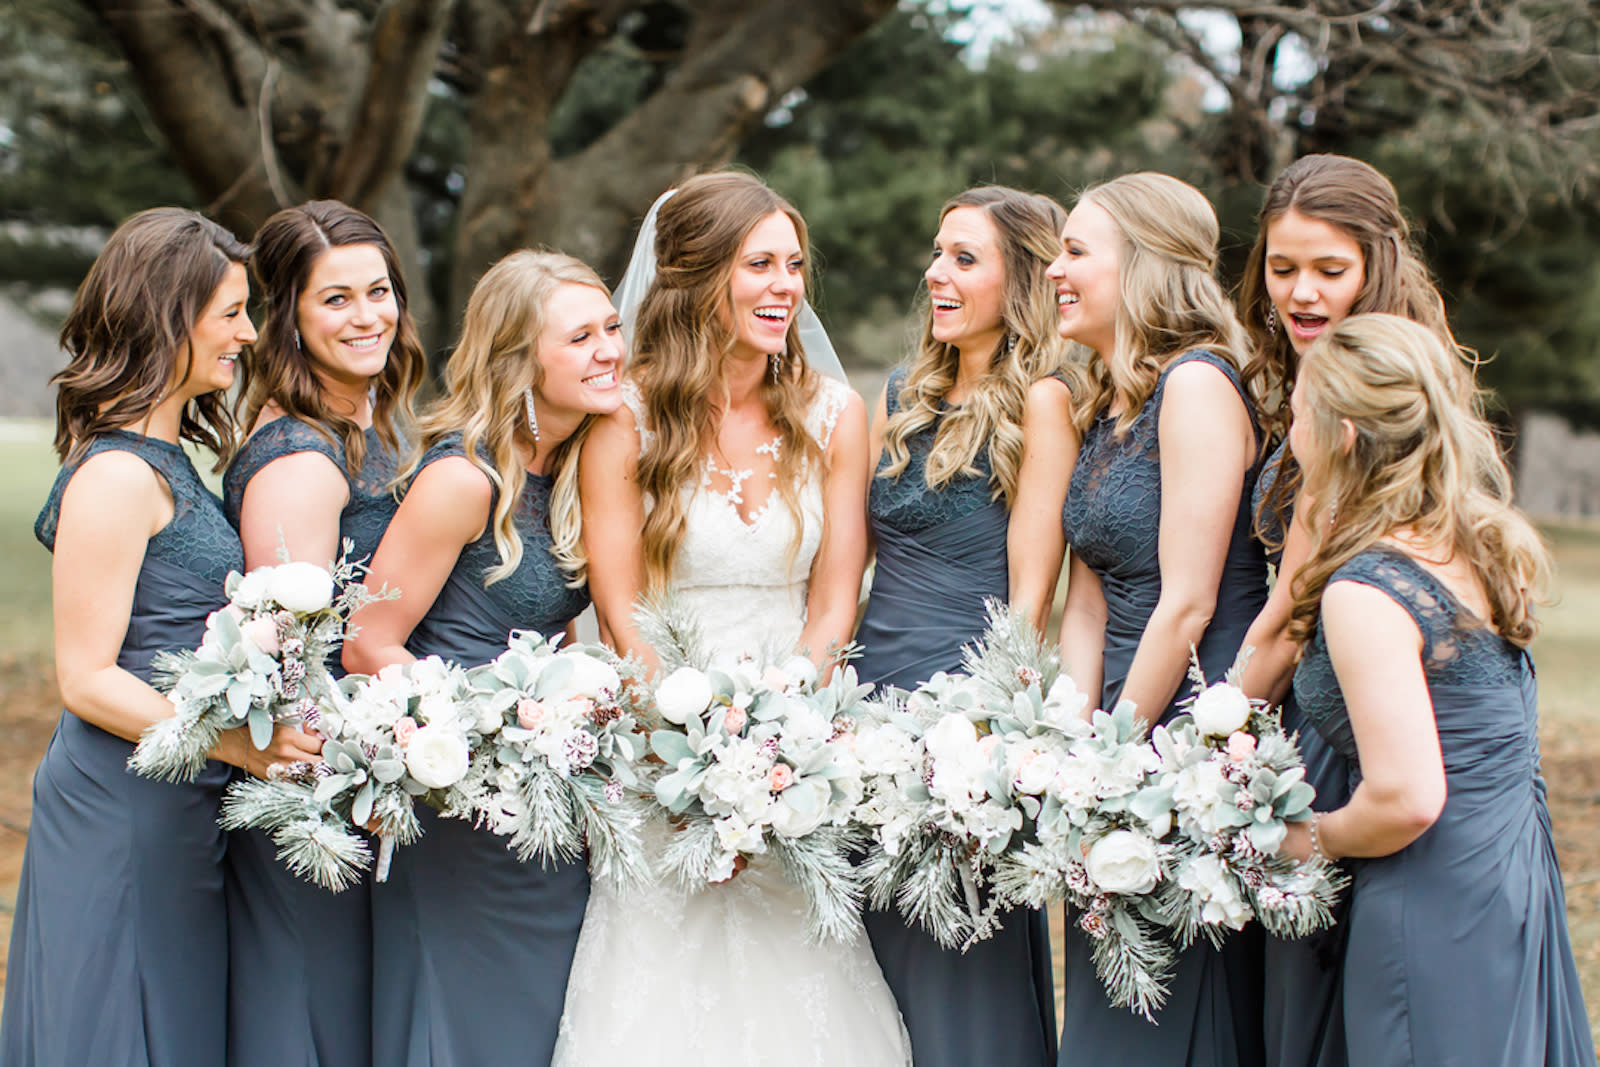 The Bridesmaid Duties: A Full Breakdown